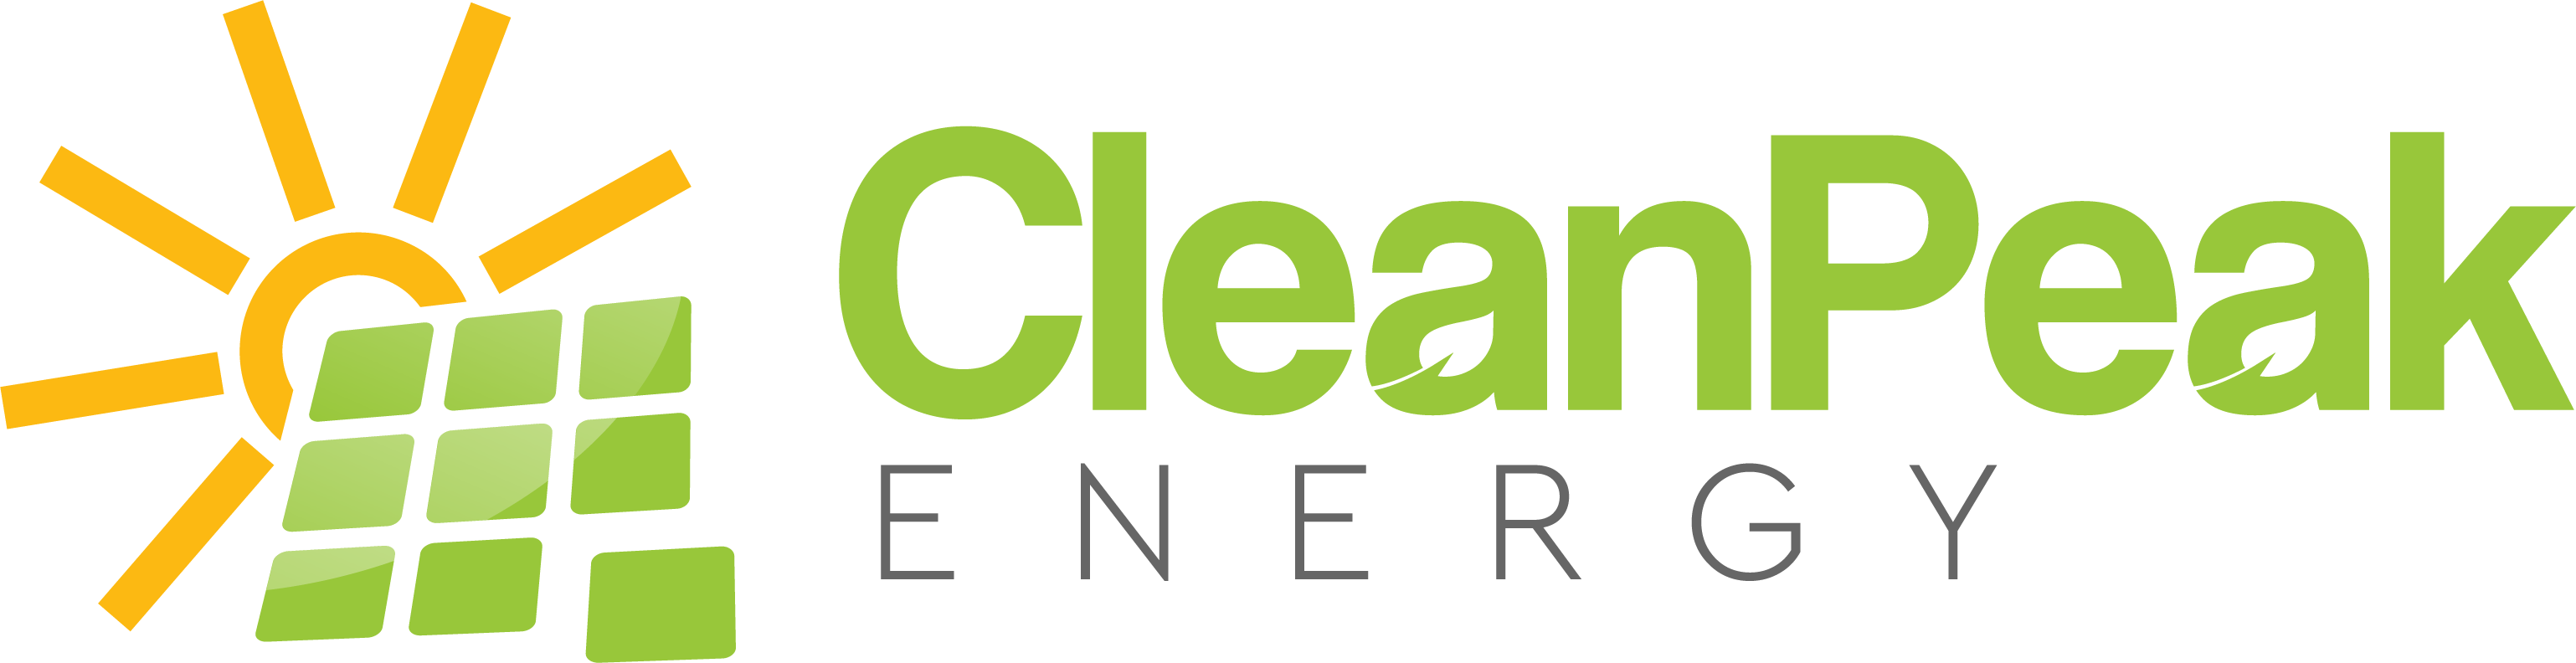 CleanPeak Energy - Logo